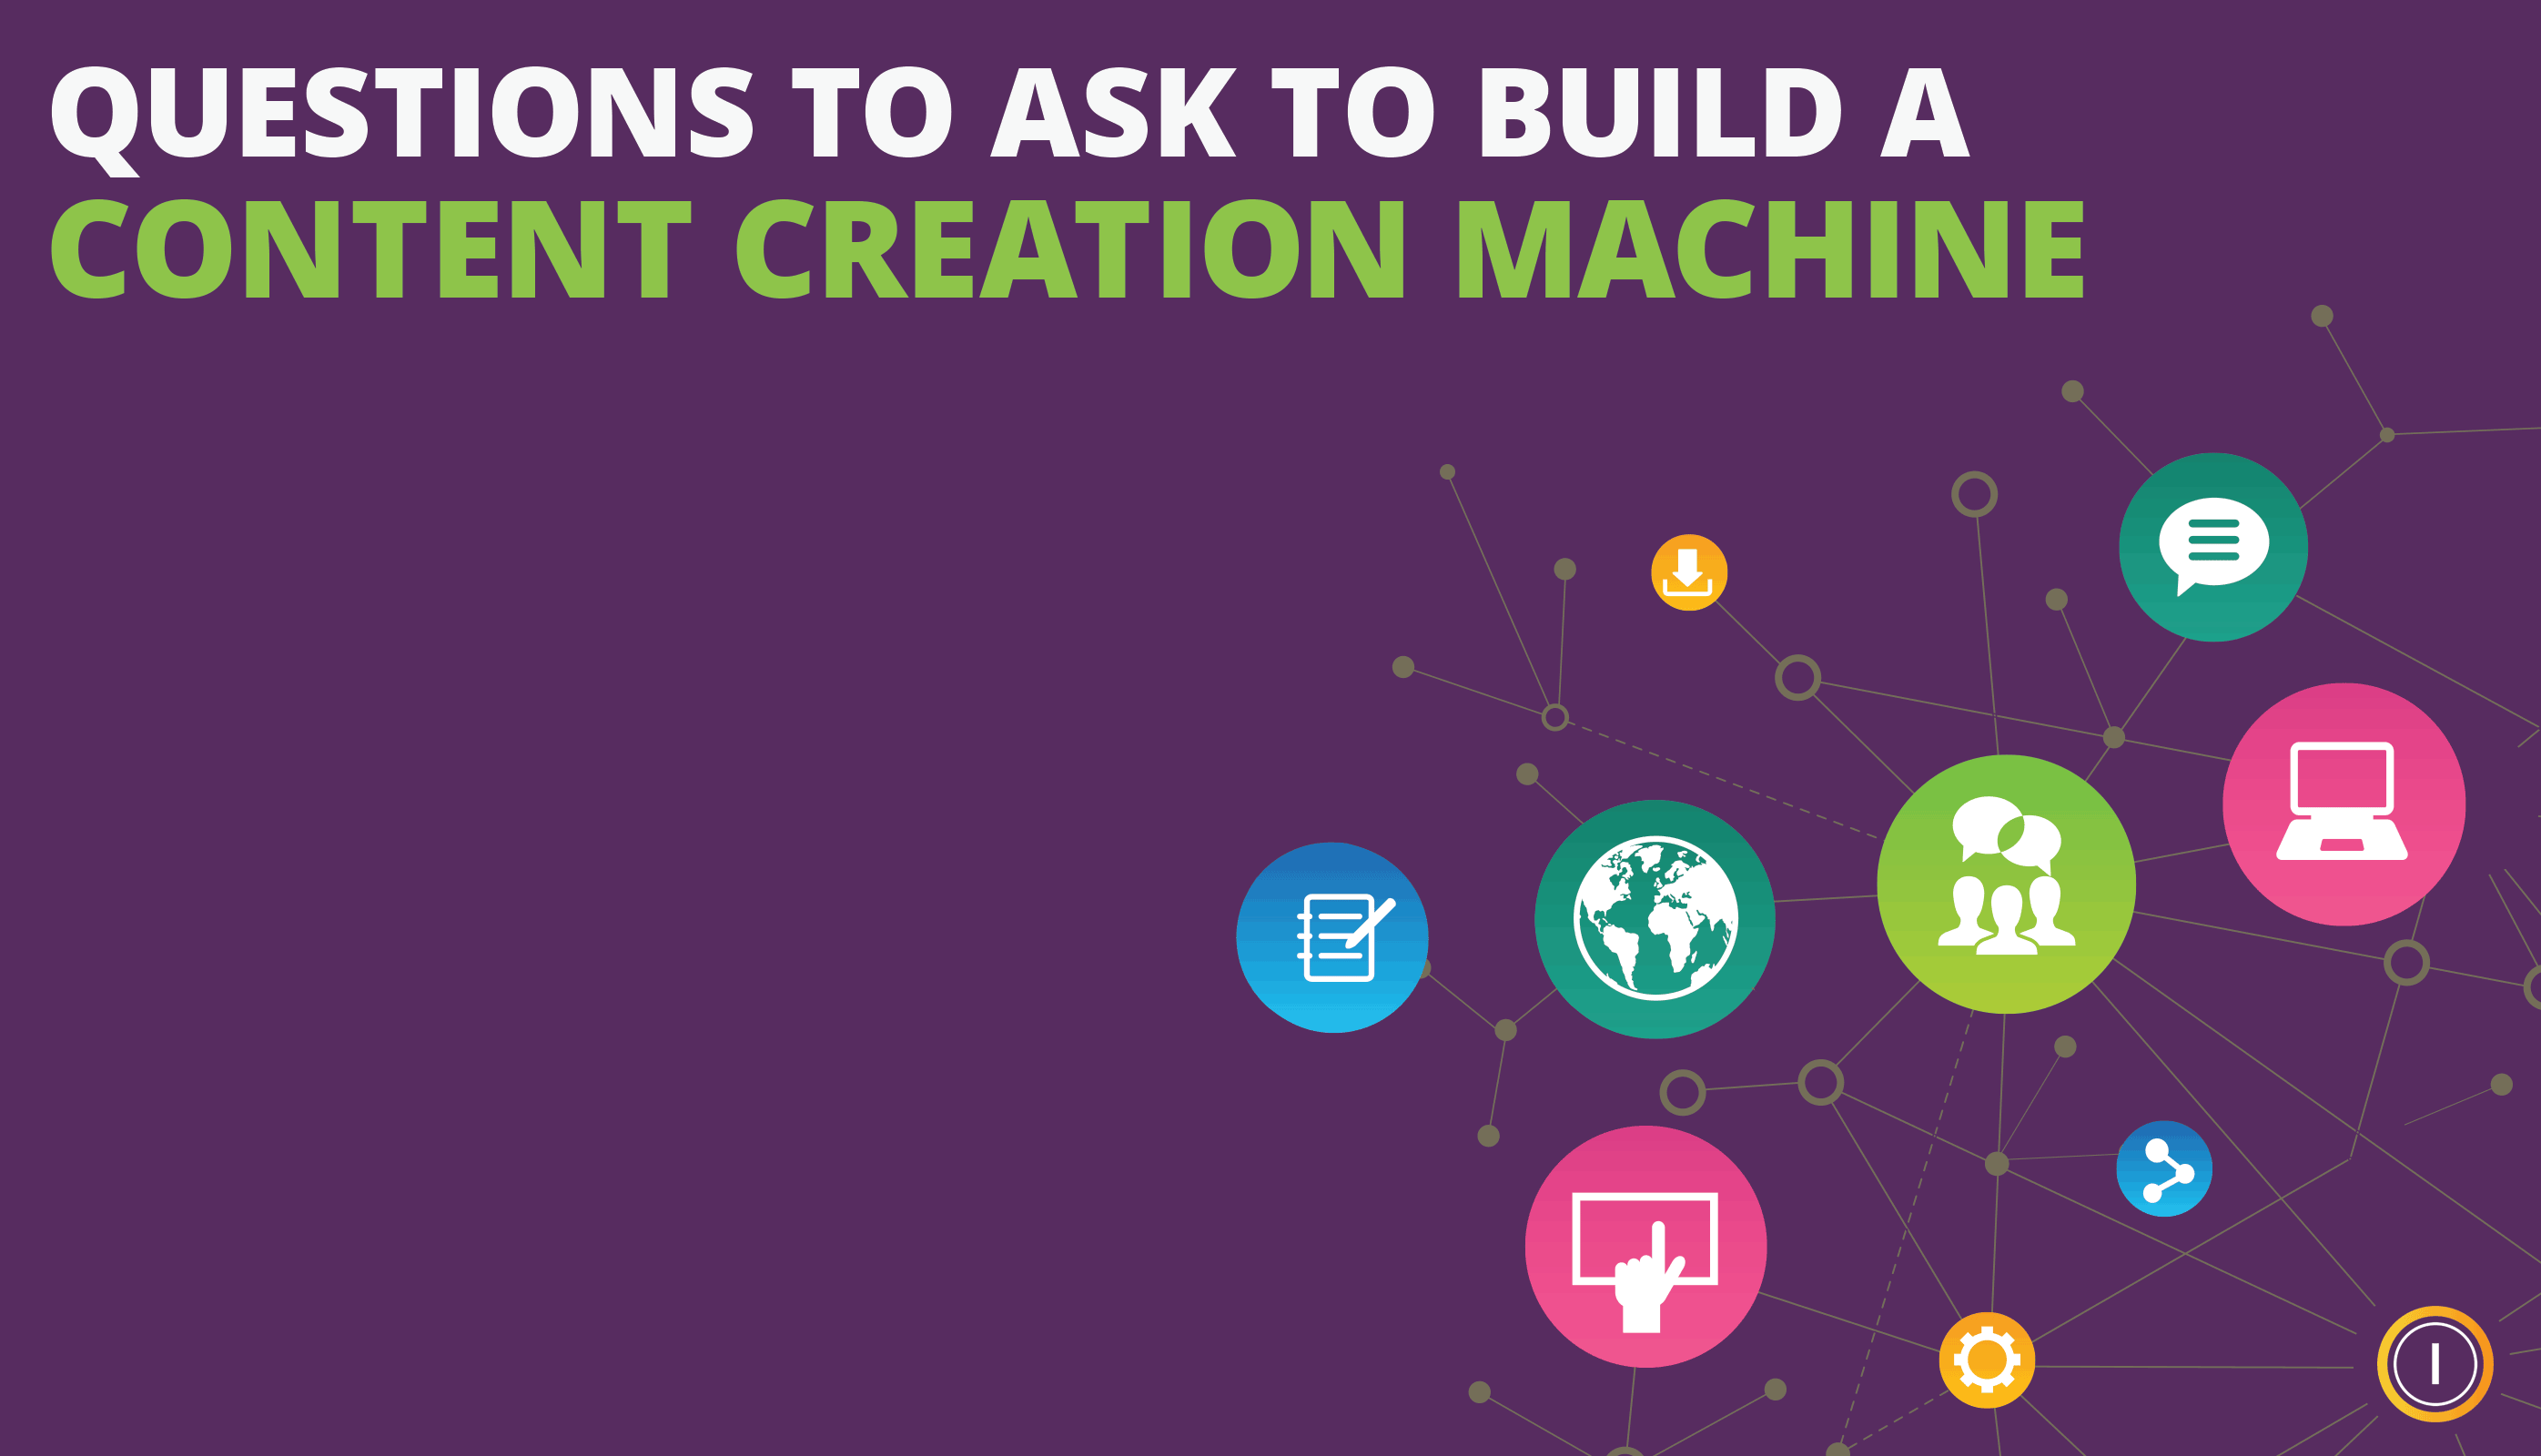 Questions to Ask to Build a Content Creation Machine